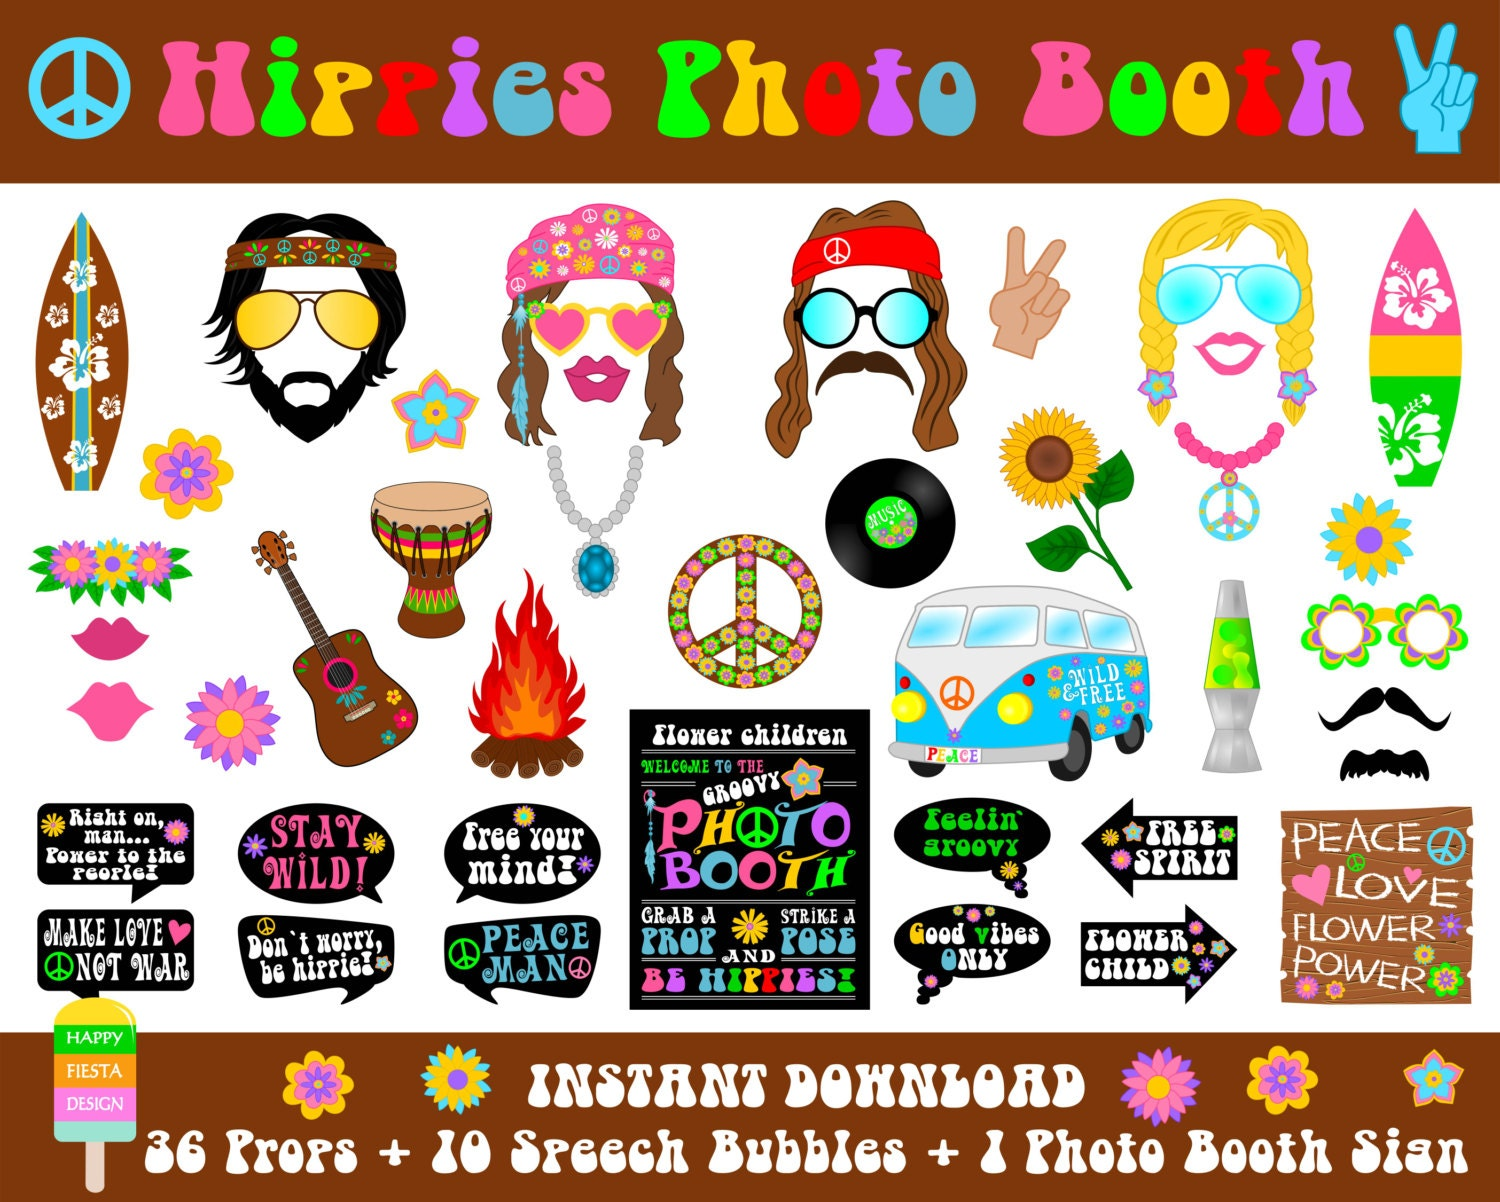 Printable Hippies Photo Booth Propsphoto Booth Sign Hippie